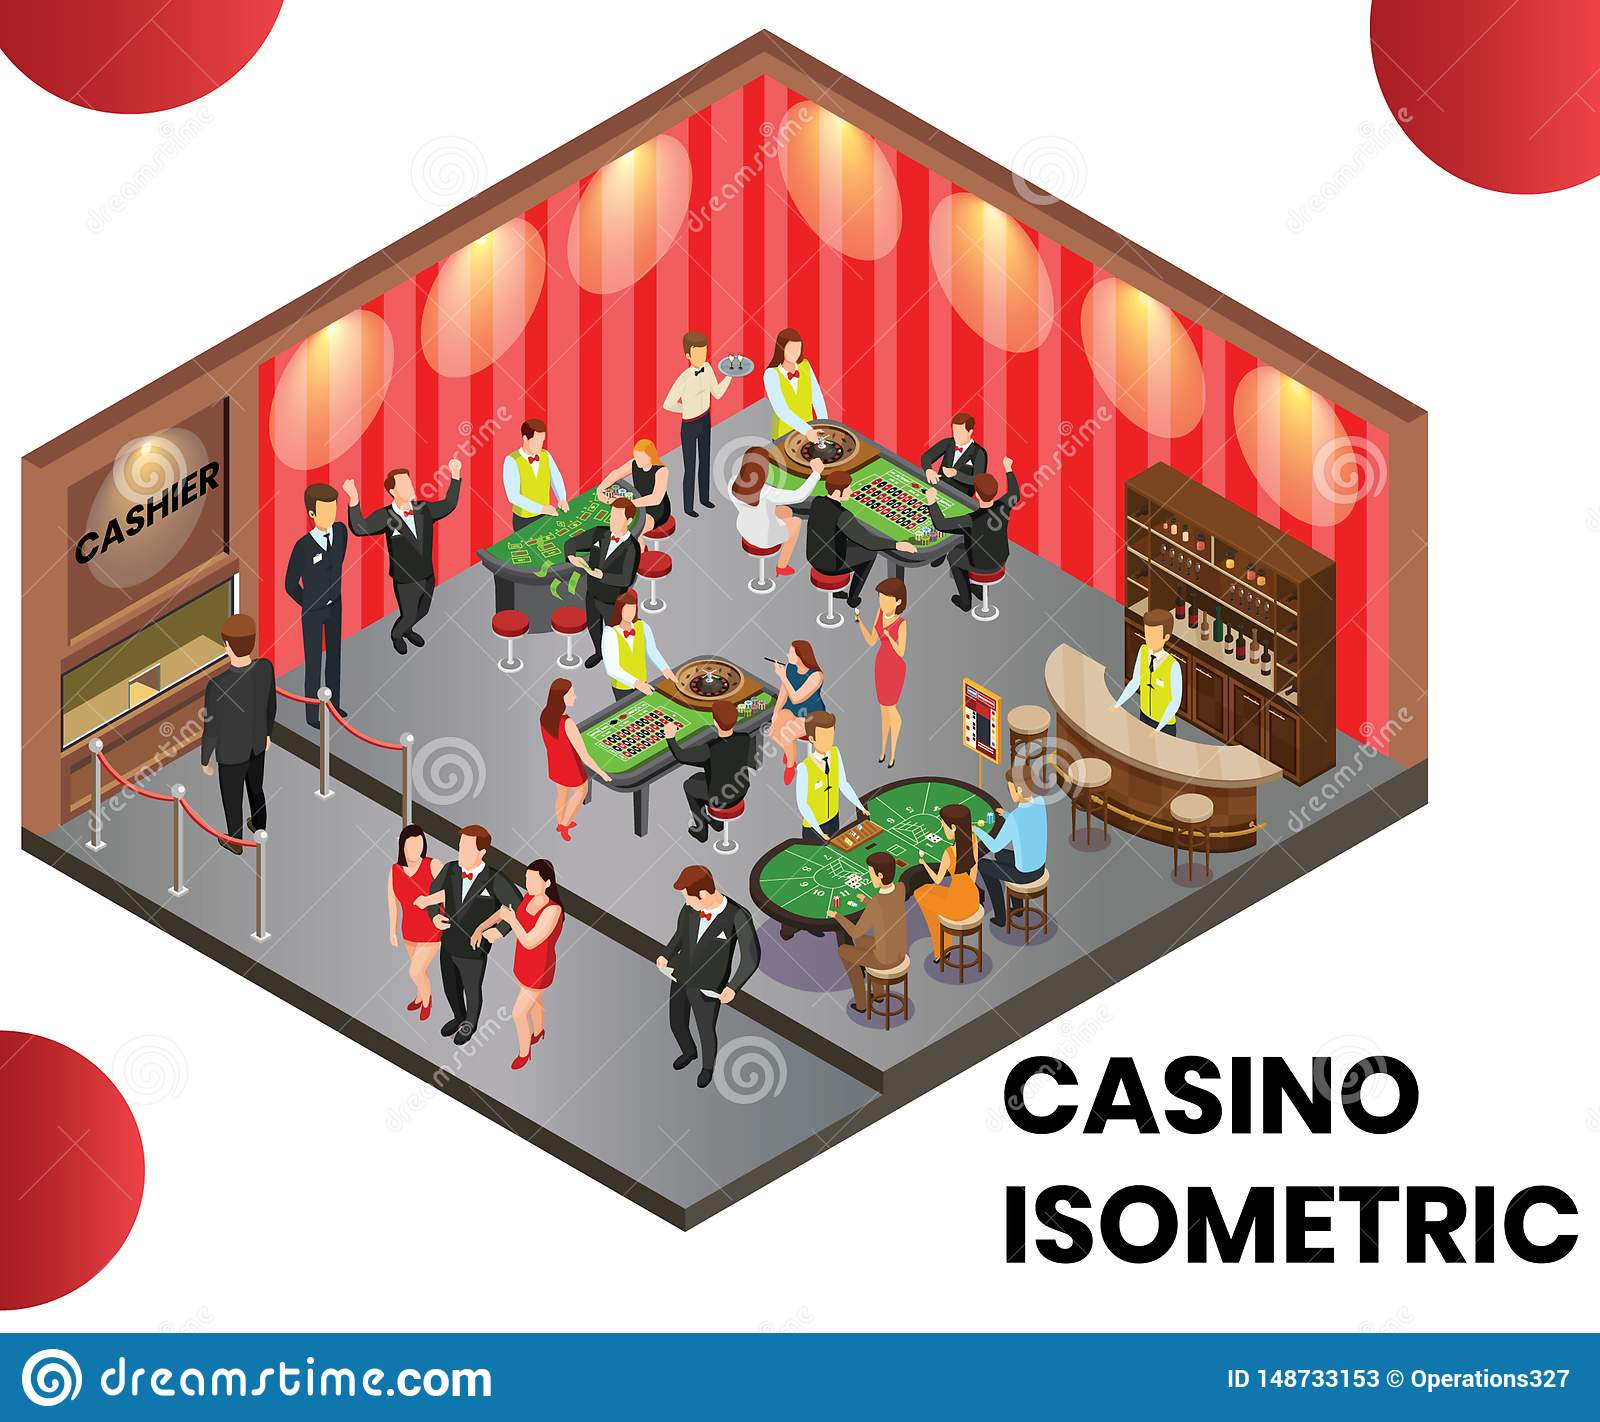 A Casino Club Where people are Playing Isometric Artwork Concept